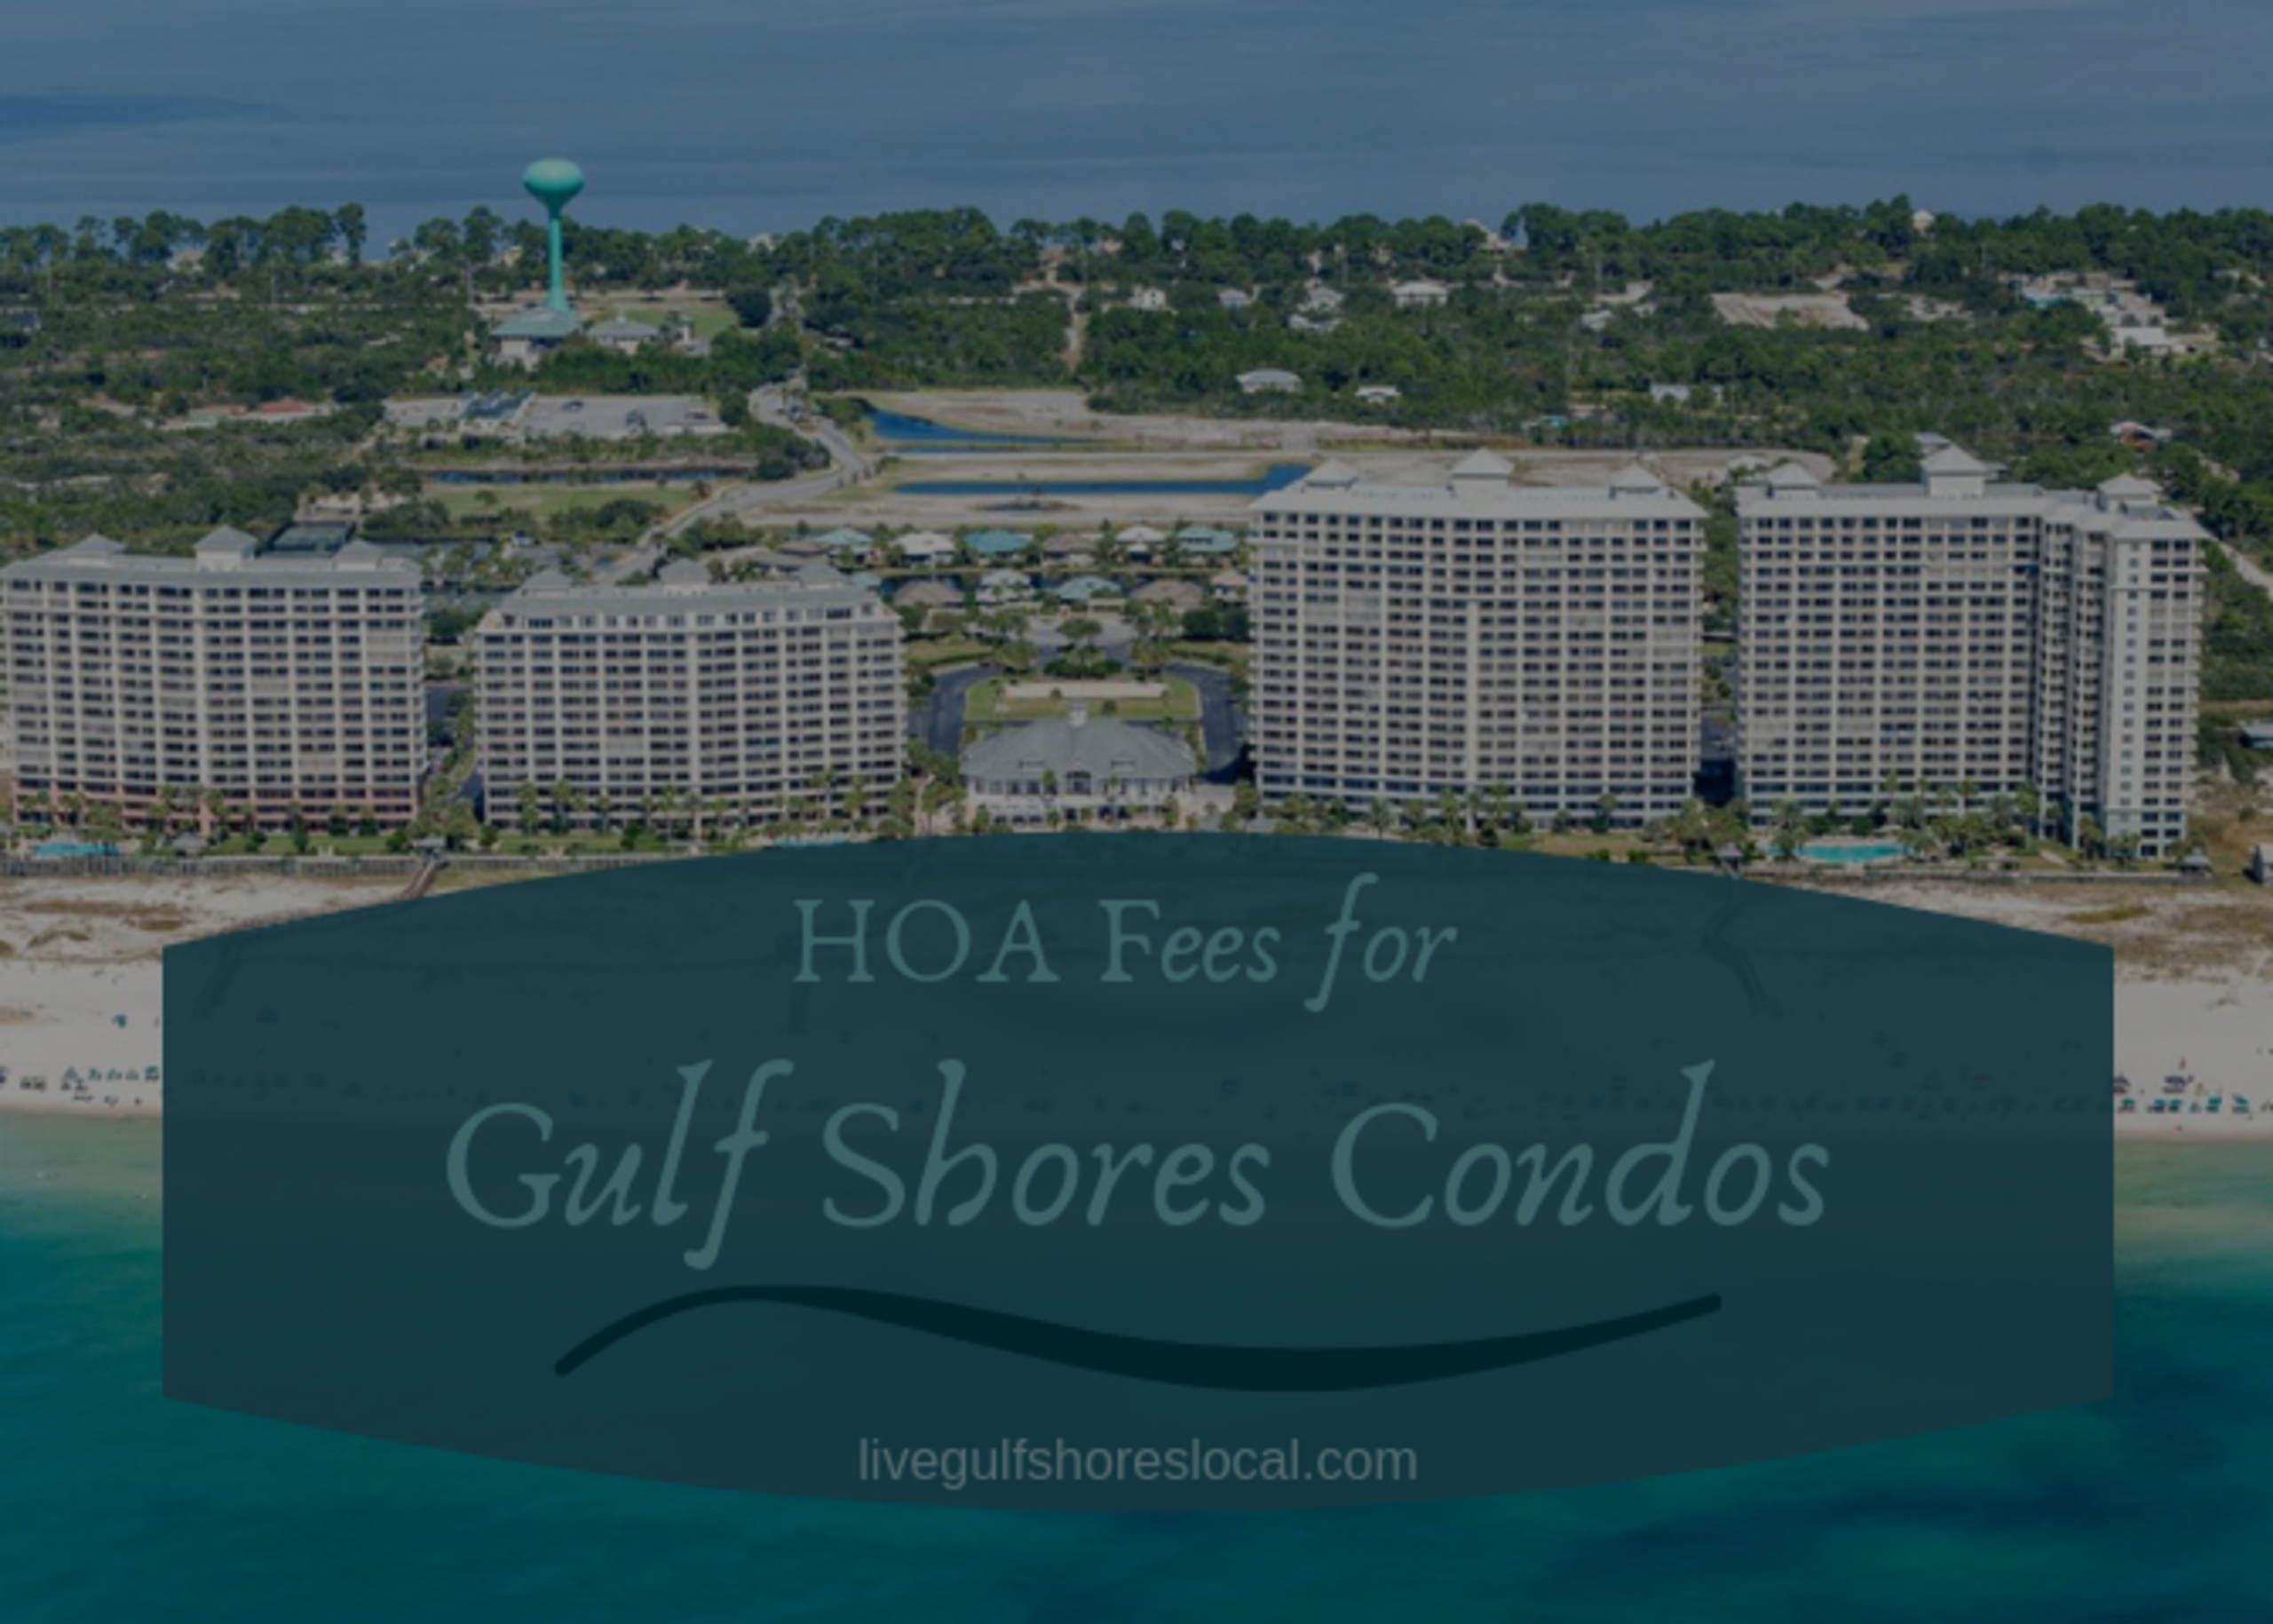 HOA Fees for Gulf Shores Condos